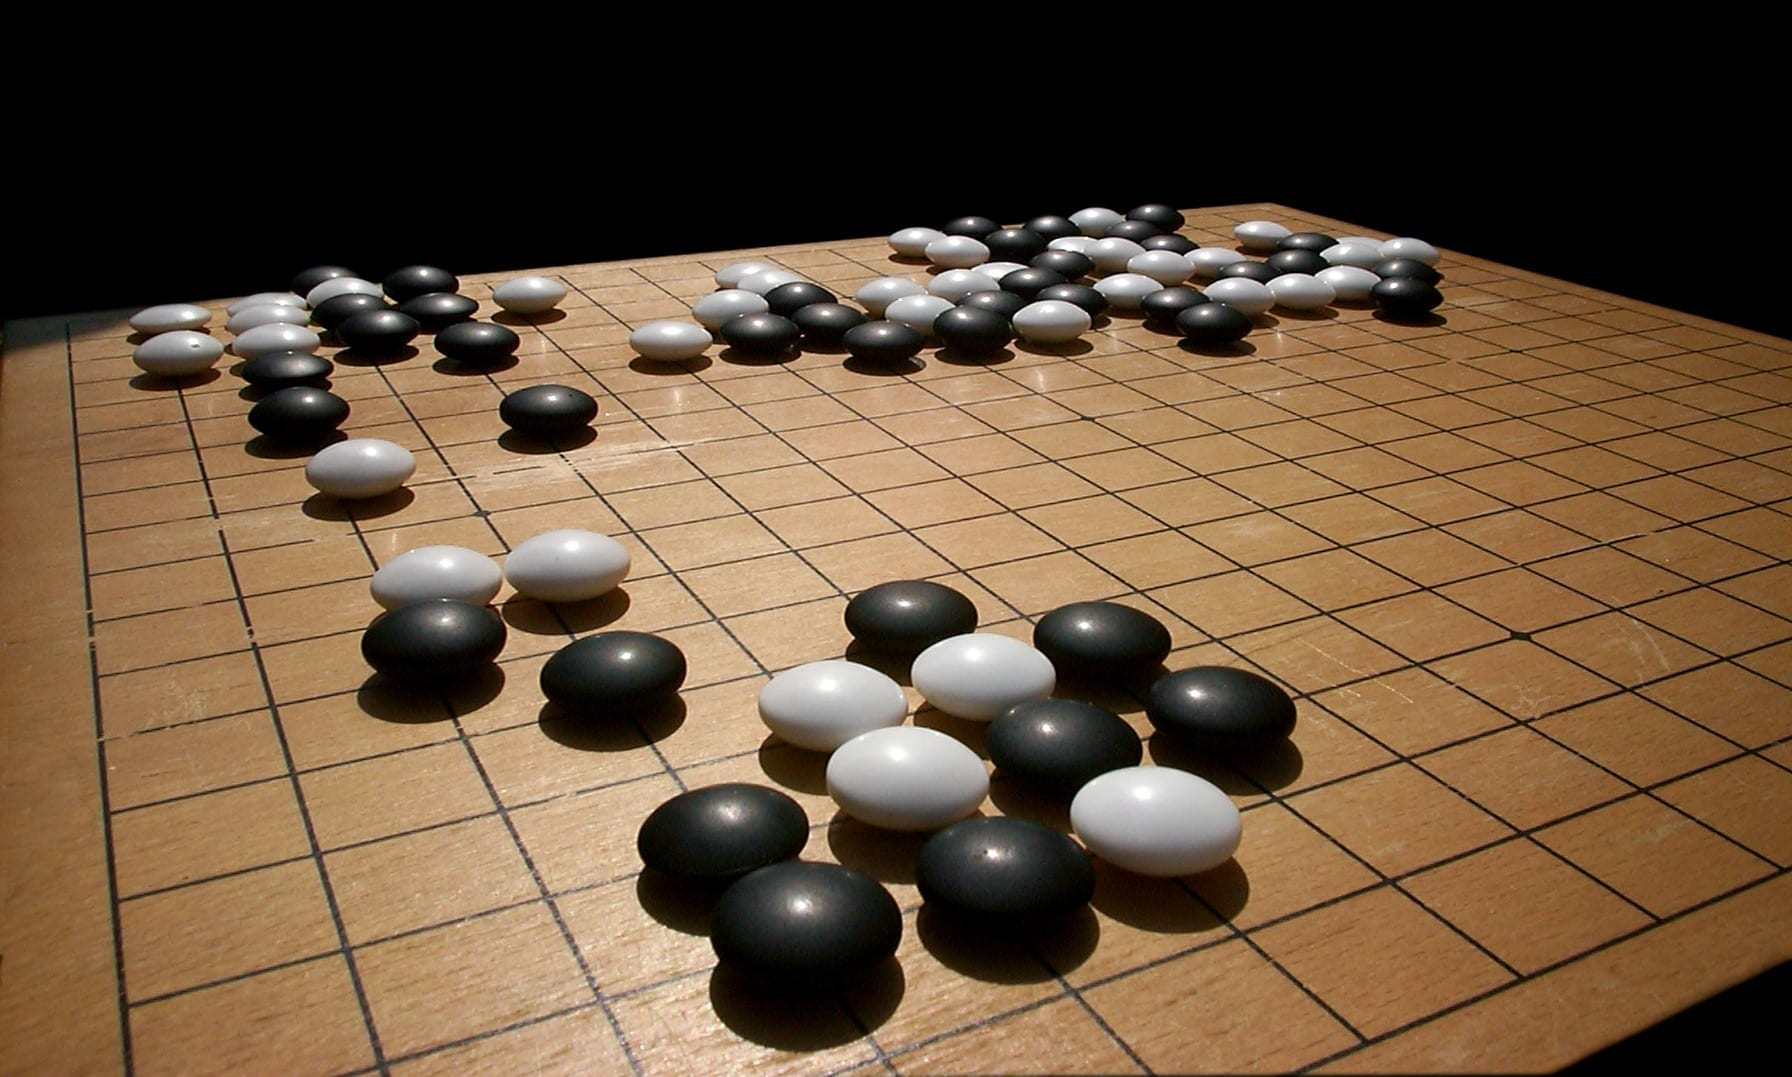 The Rise of Artificial Intelligence: Master of Go Is Walloped by Google Computer Program